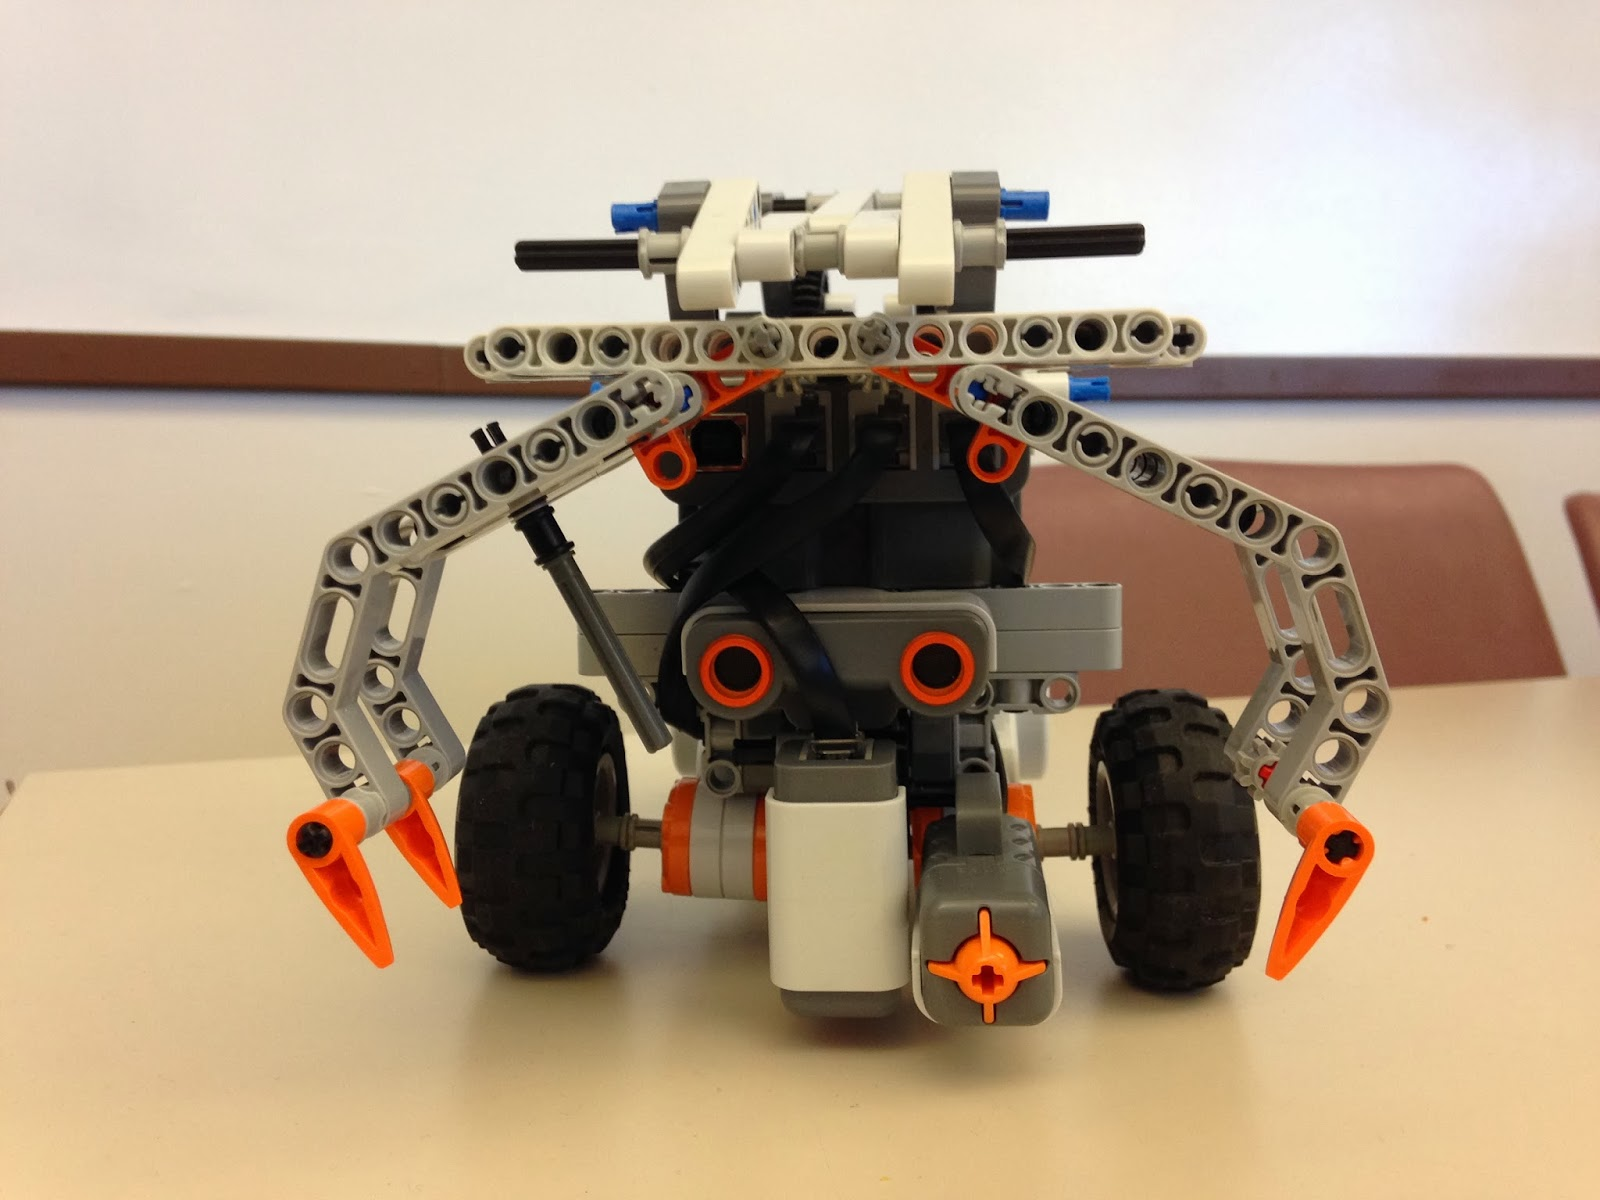 Lego Mindstorms Grab And Lift Instructions